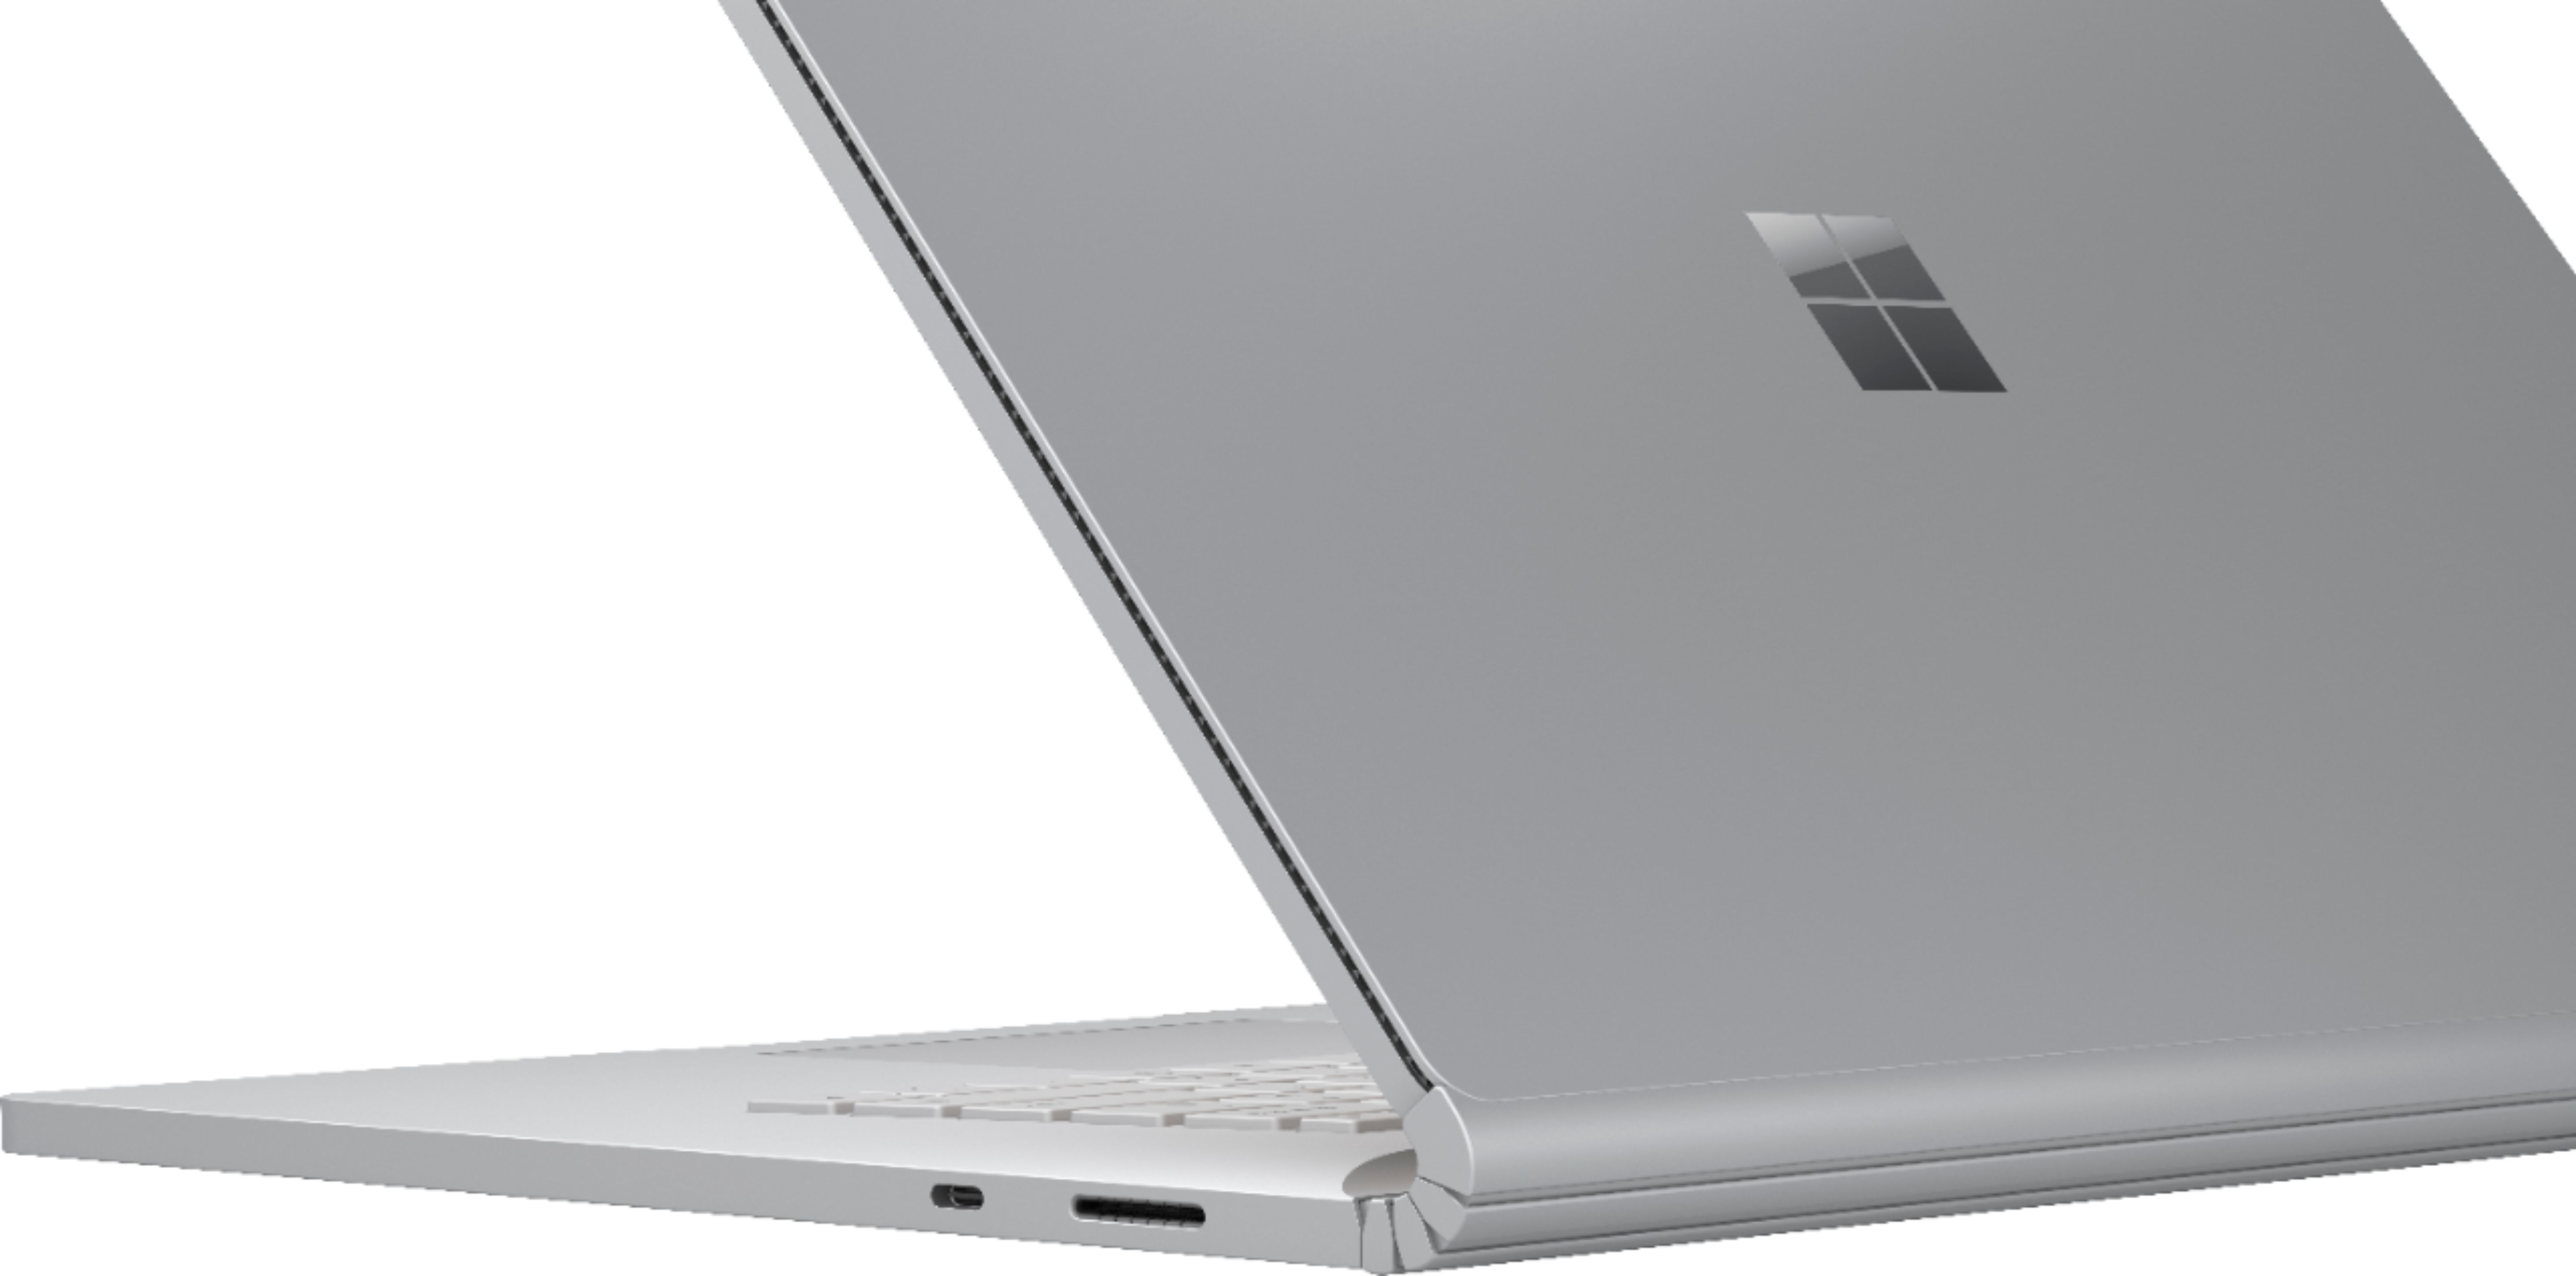 """Alt View Zoom 12. Microsoft - Surface Book 3 15"""" Touch-Screen PixelSense™ - 2-in-1 Laptop - Intel Core i7 - 32GB Memory - 2TB SSD - Platinum."""